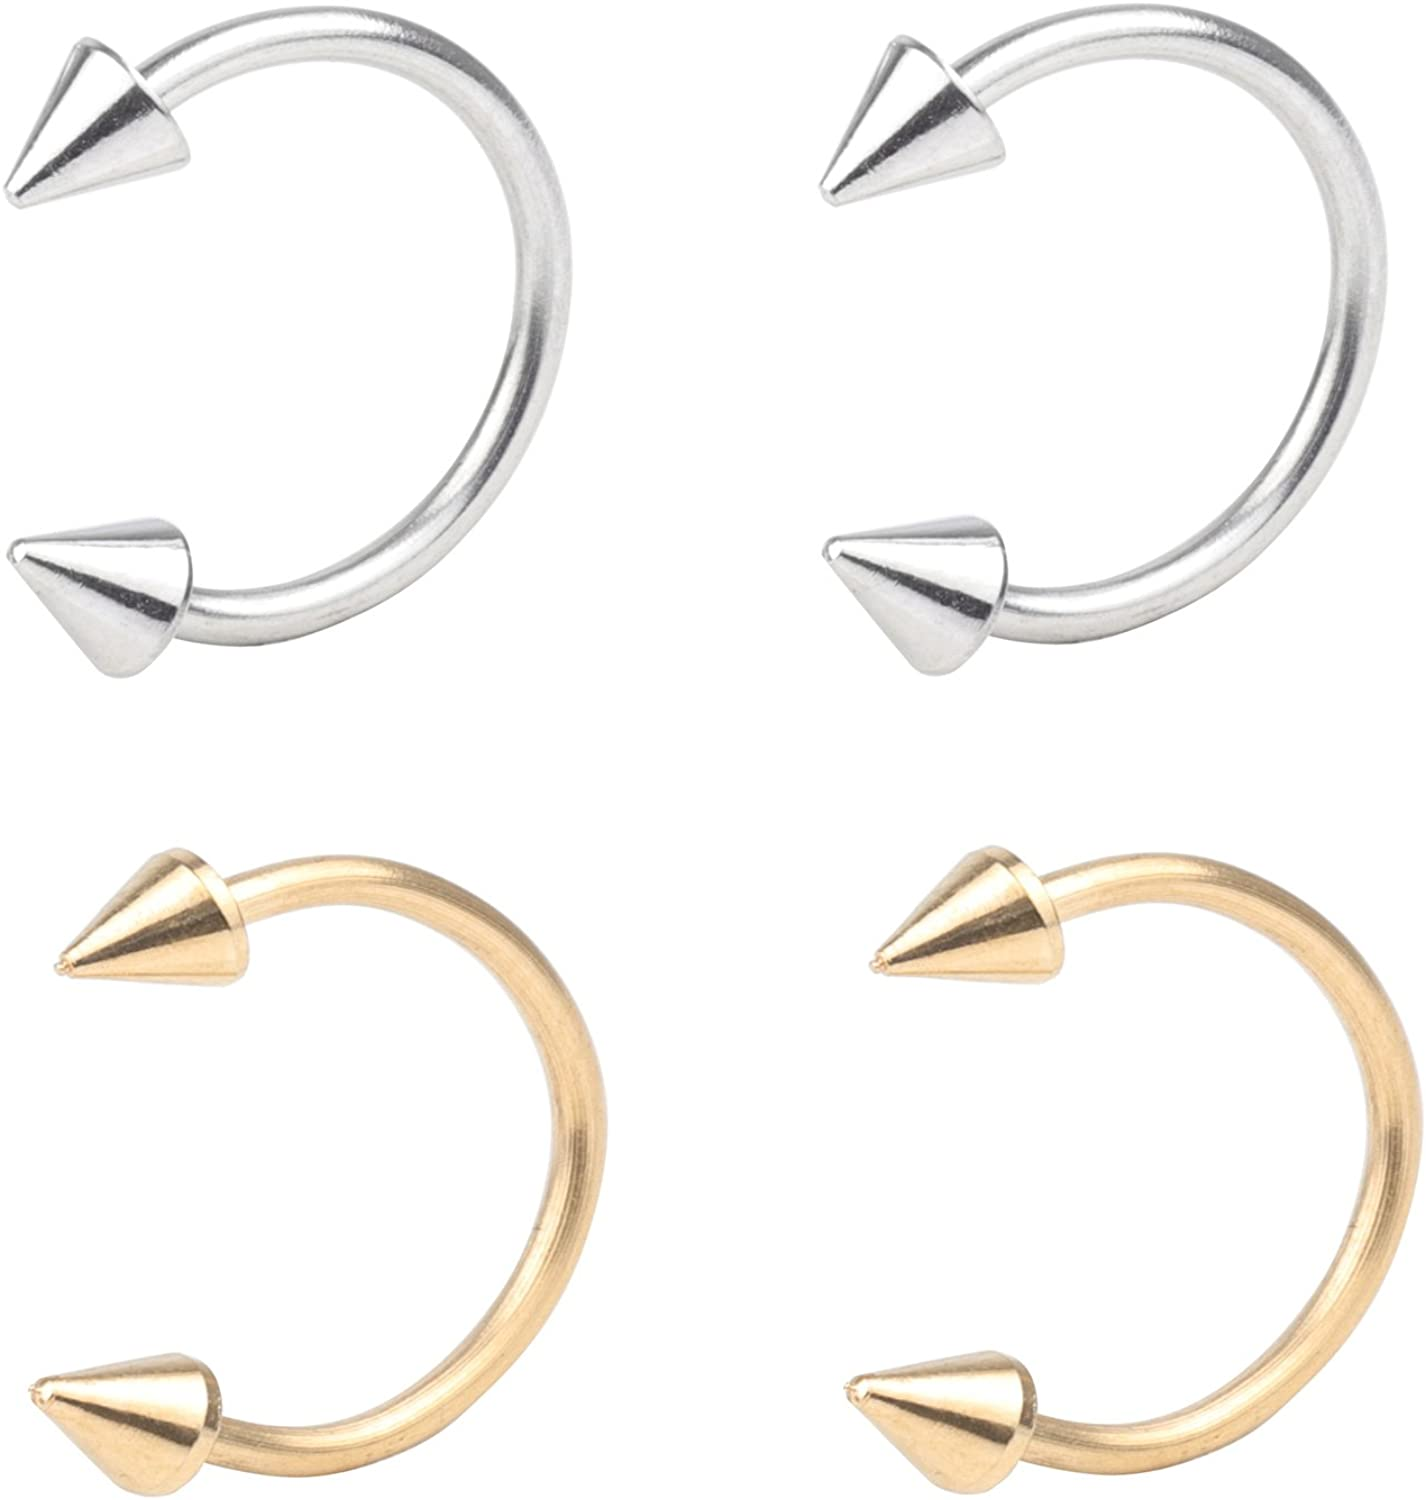 16G Nose Septum Horseshoe Hoop Earring Eyebrow Tragus Lip Piercing Ring 3mm Spike 10mm Surgical Steel